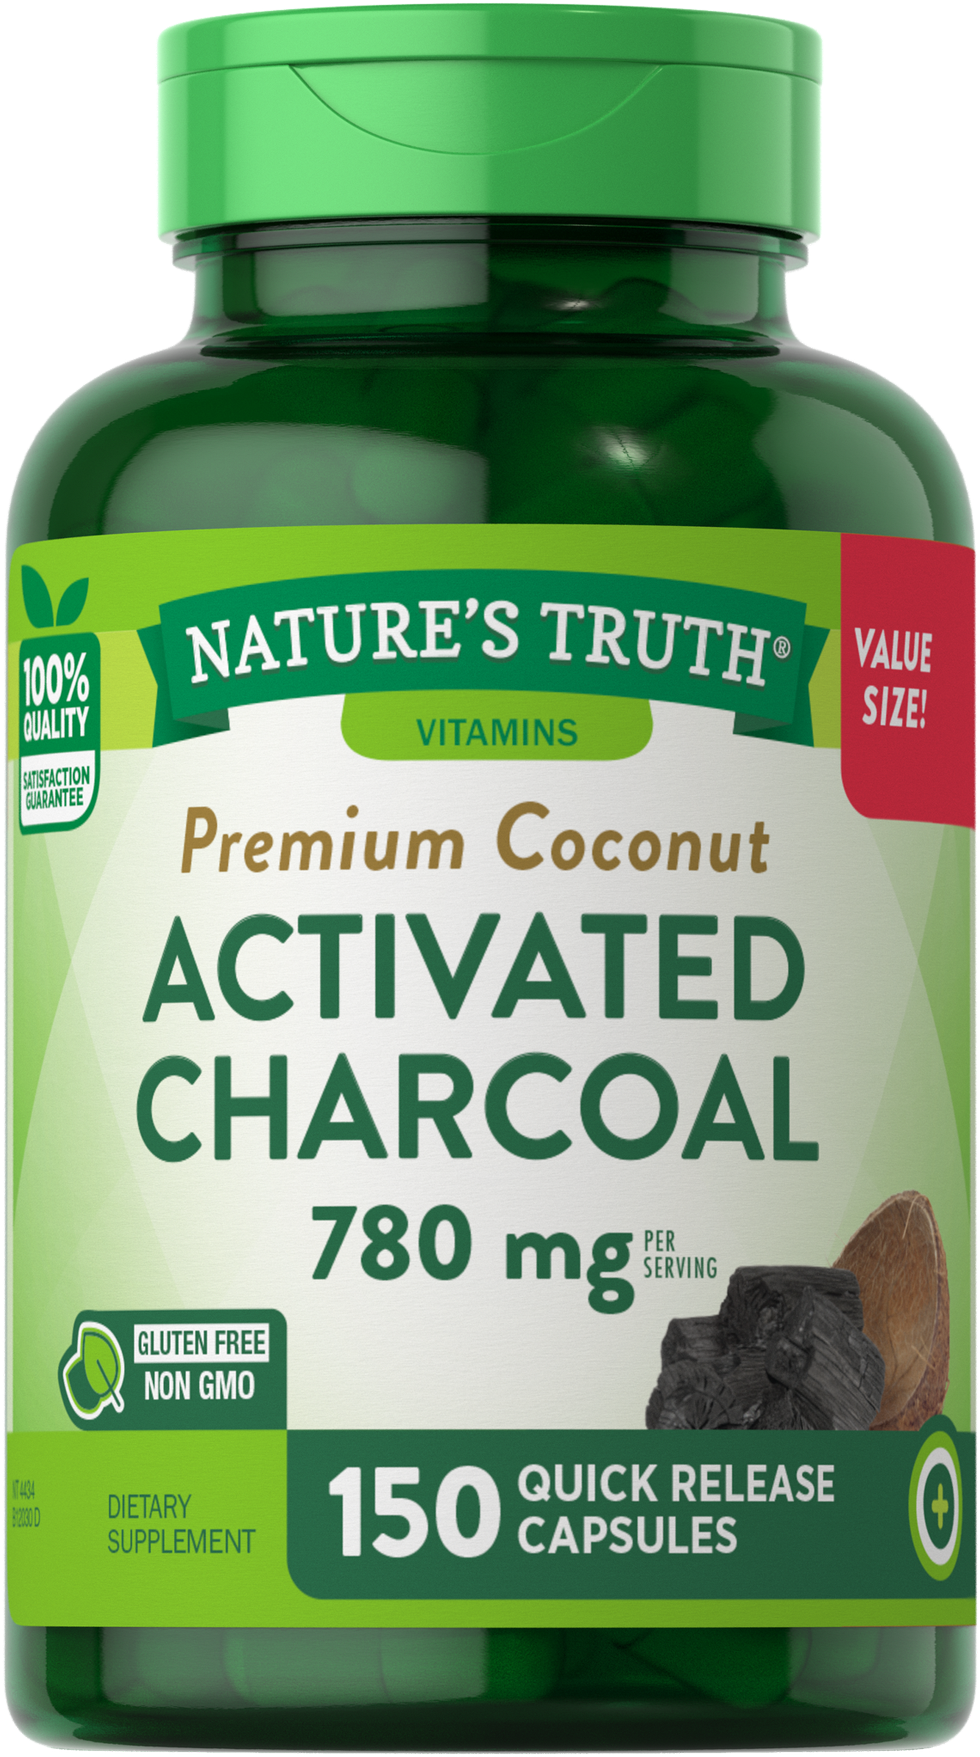 Activated Charcoal 780 mg